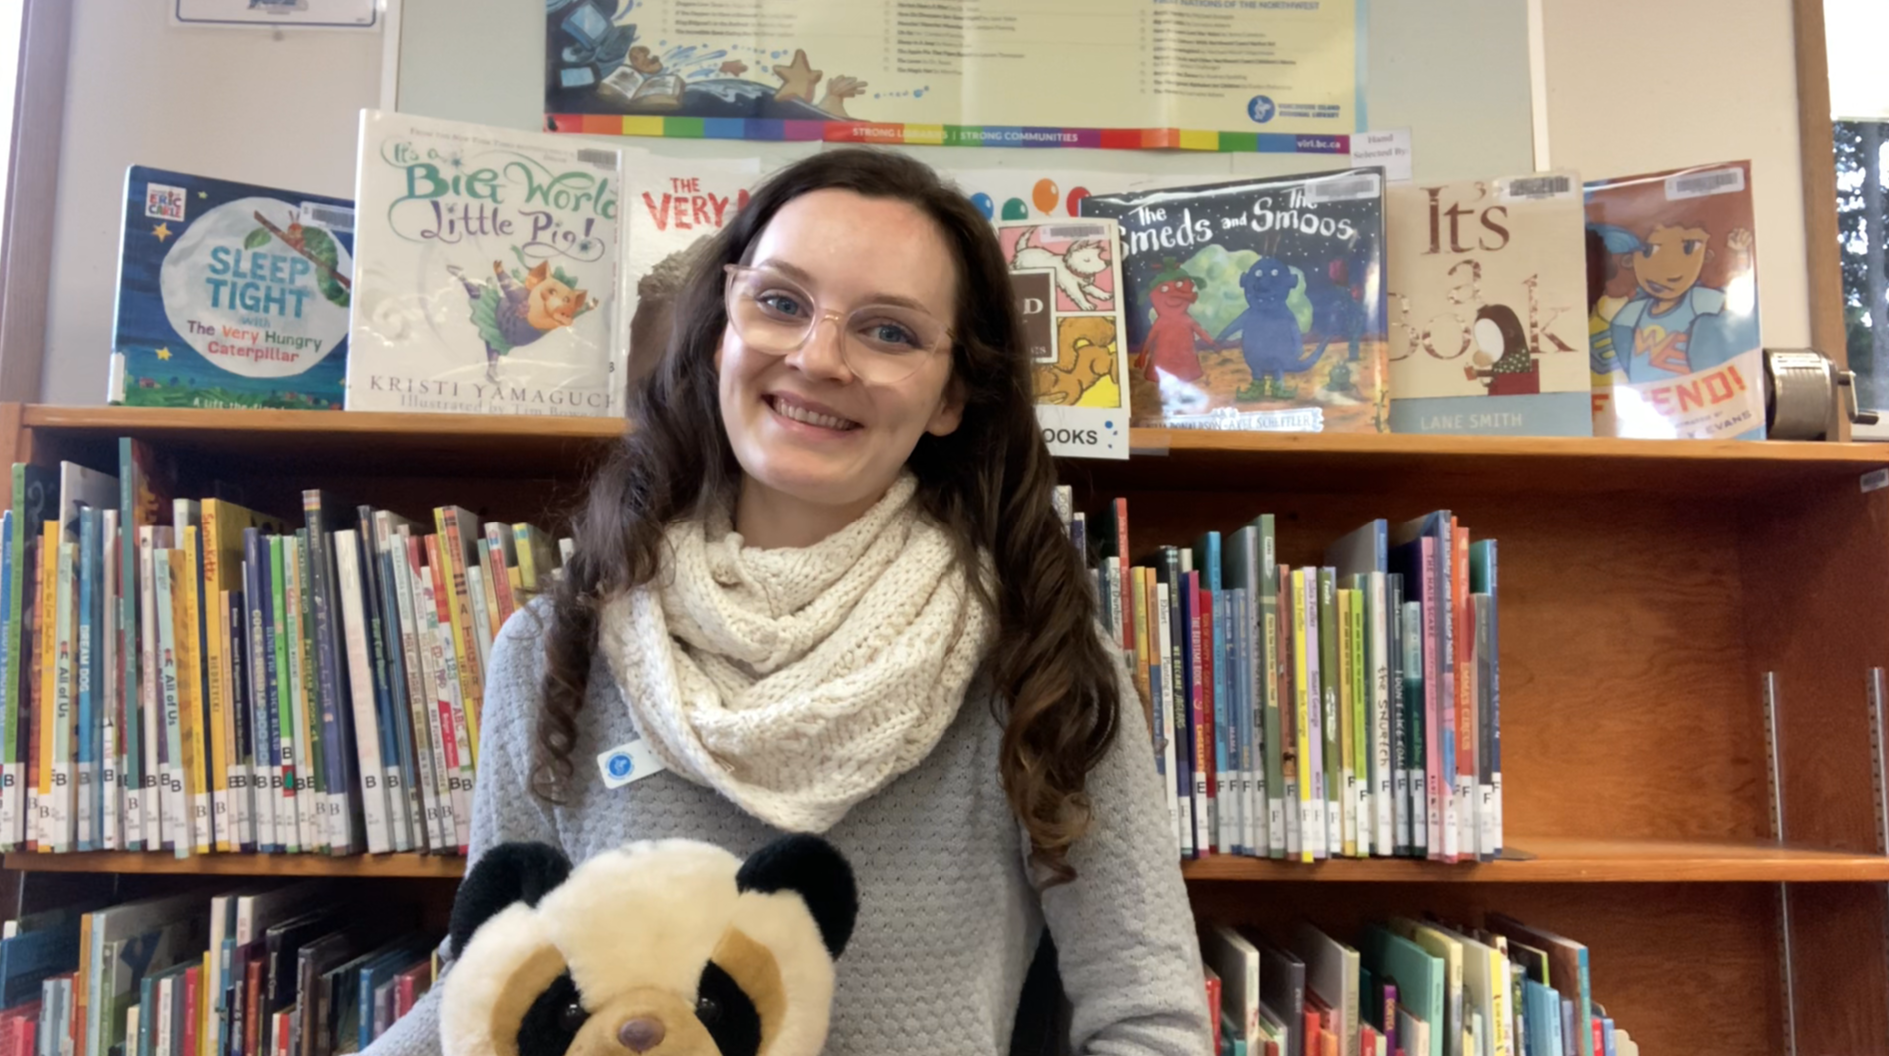 Woman sitting in front of a library bookshelf with a teddy bear on her lap.